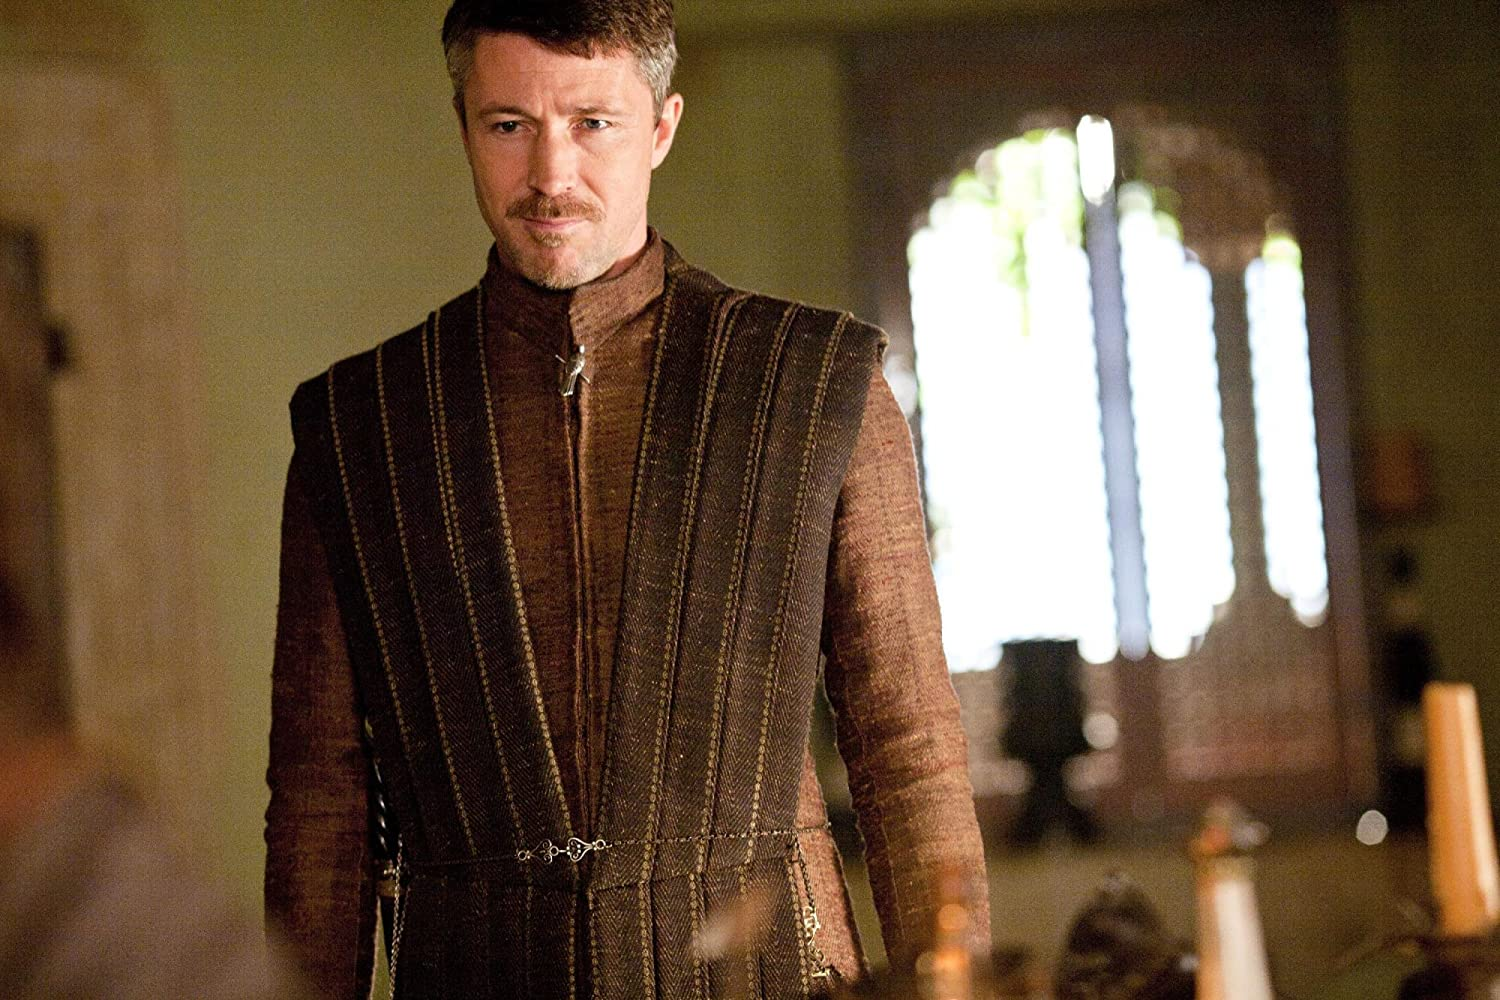 Aidan Gillen in Game of Thrones (2011)